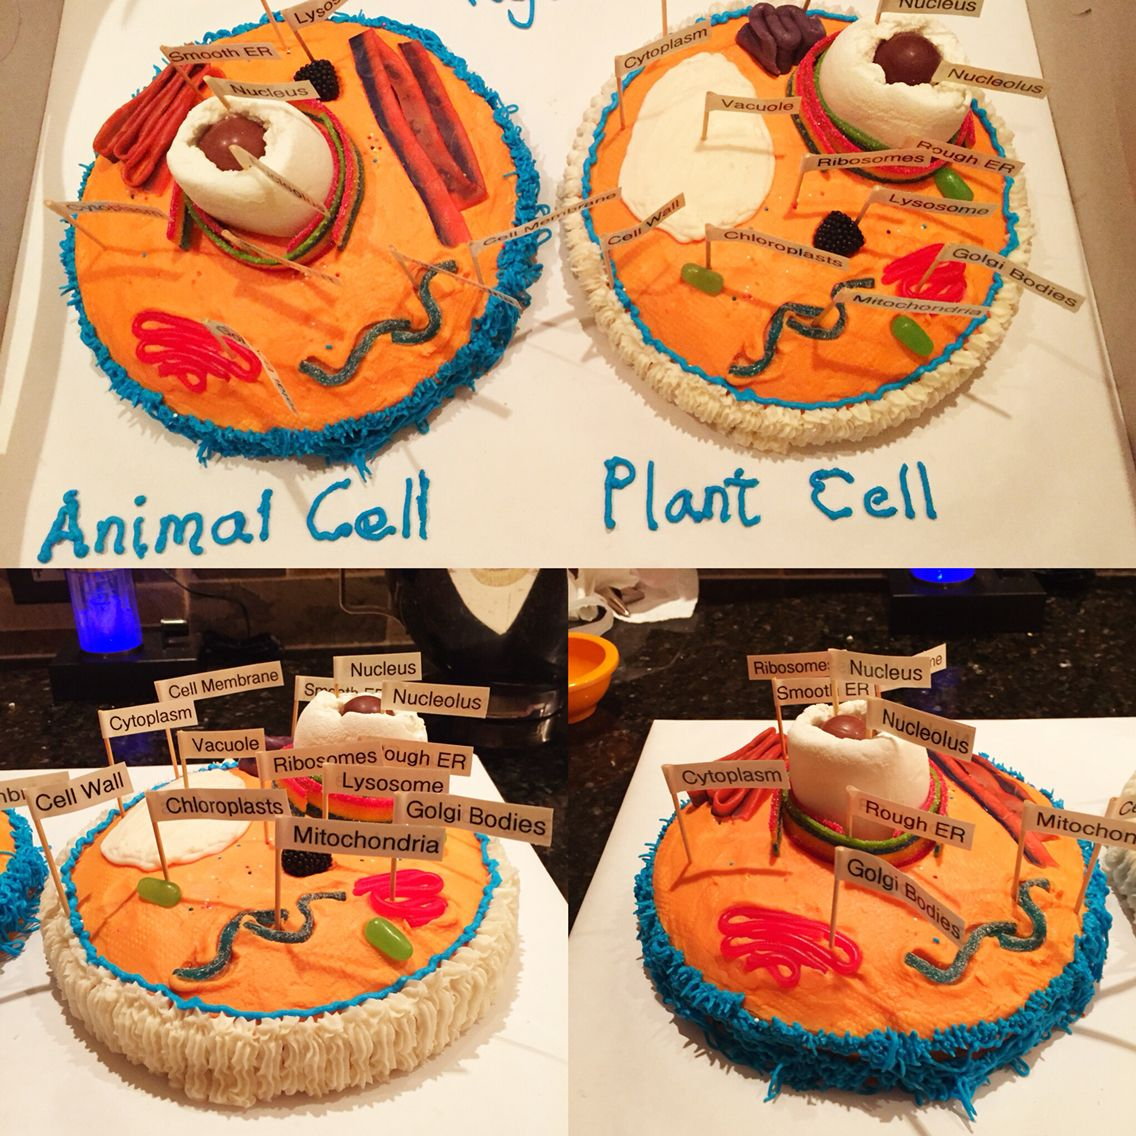 plant cell and animal cell model  cake  u0026 candy